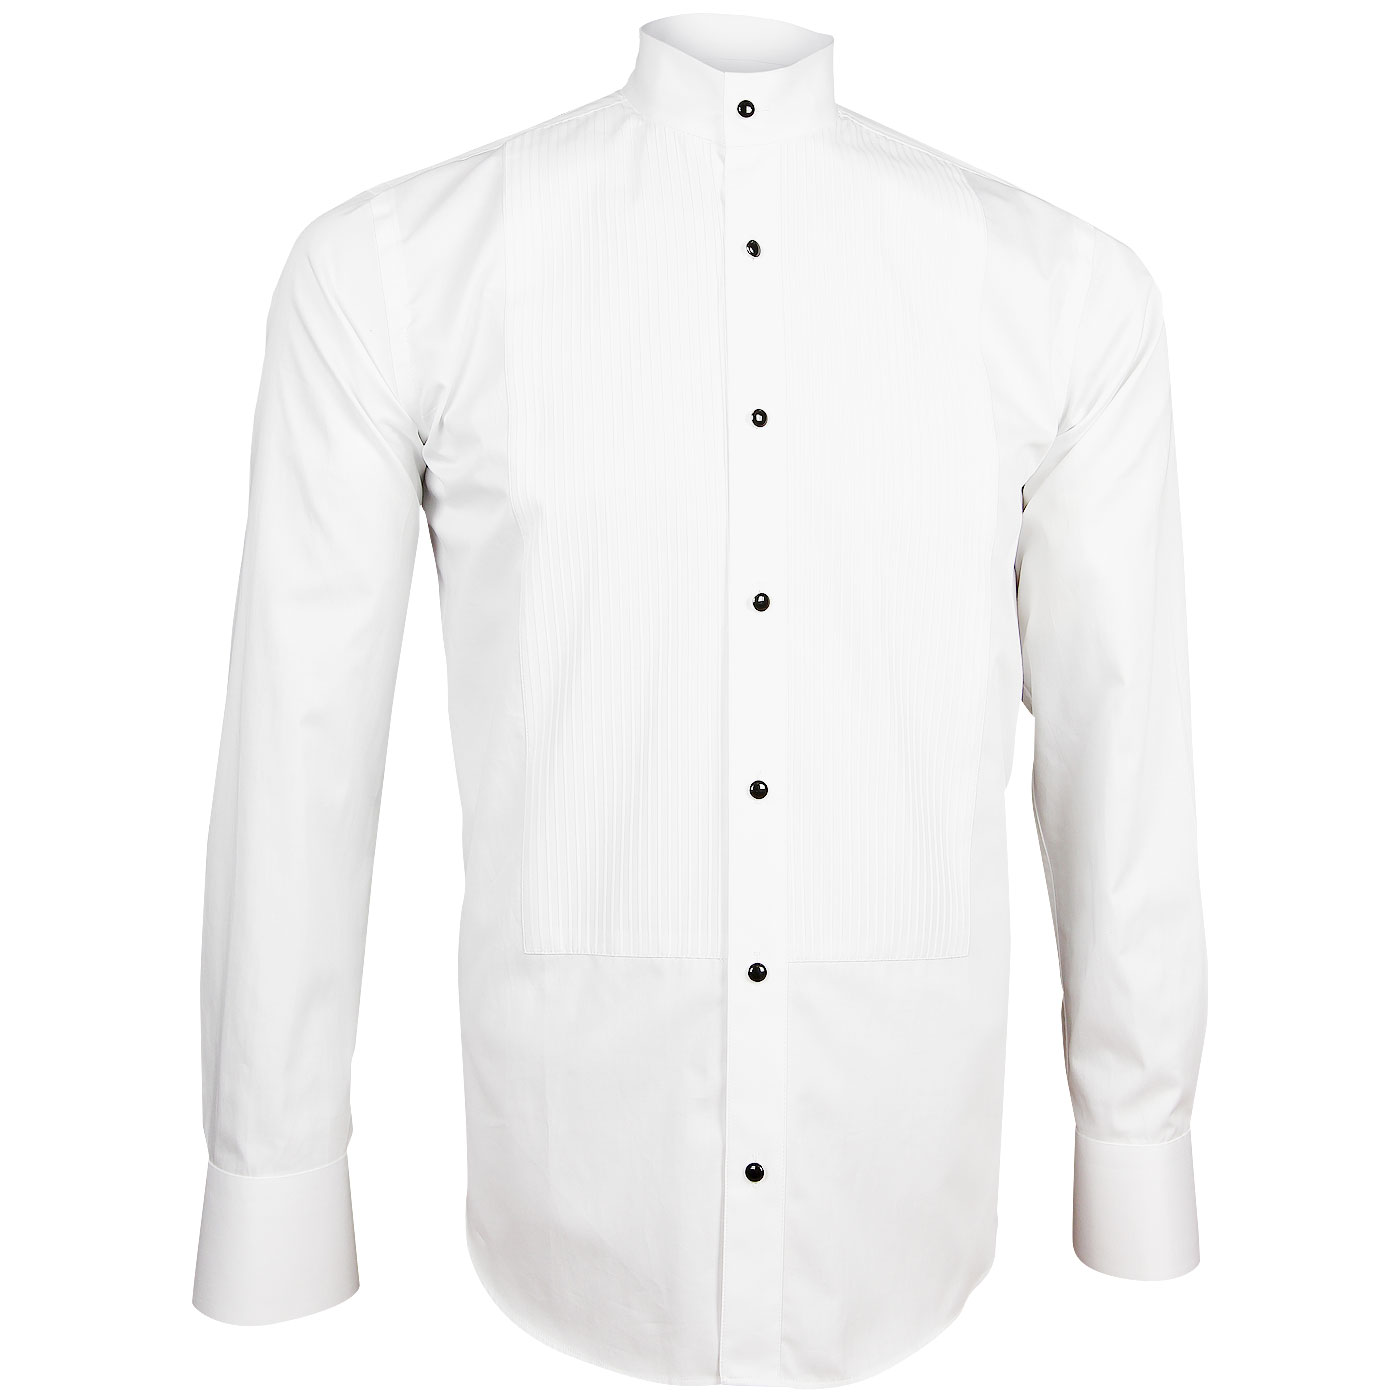 Camisa de Ceremonia  con Smoking para Eventos